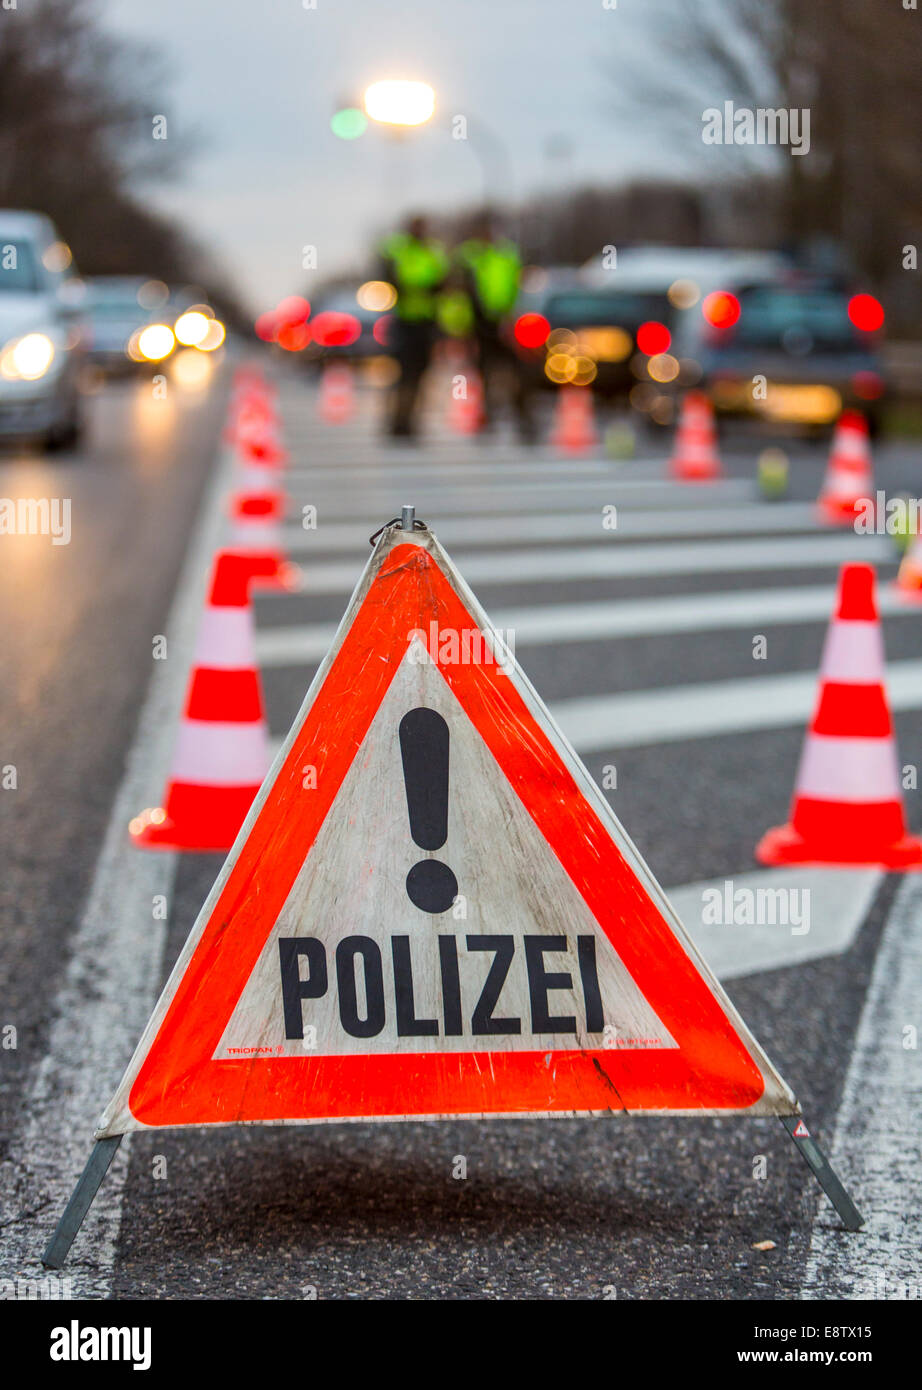 Police traffic control - Stock Image